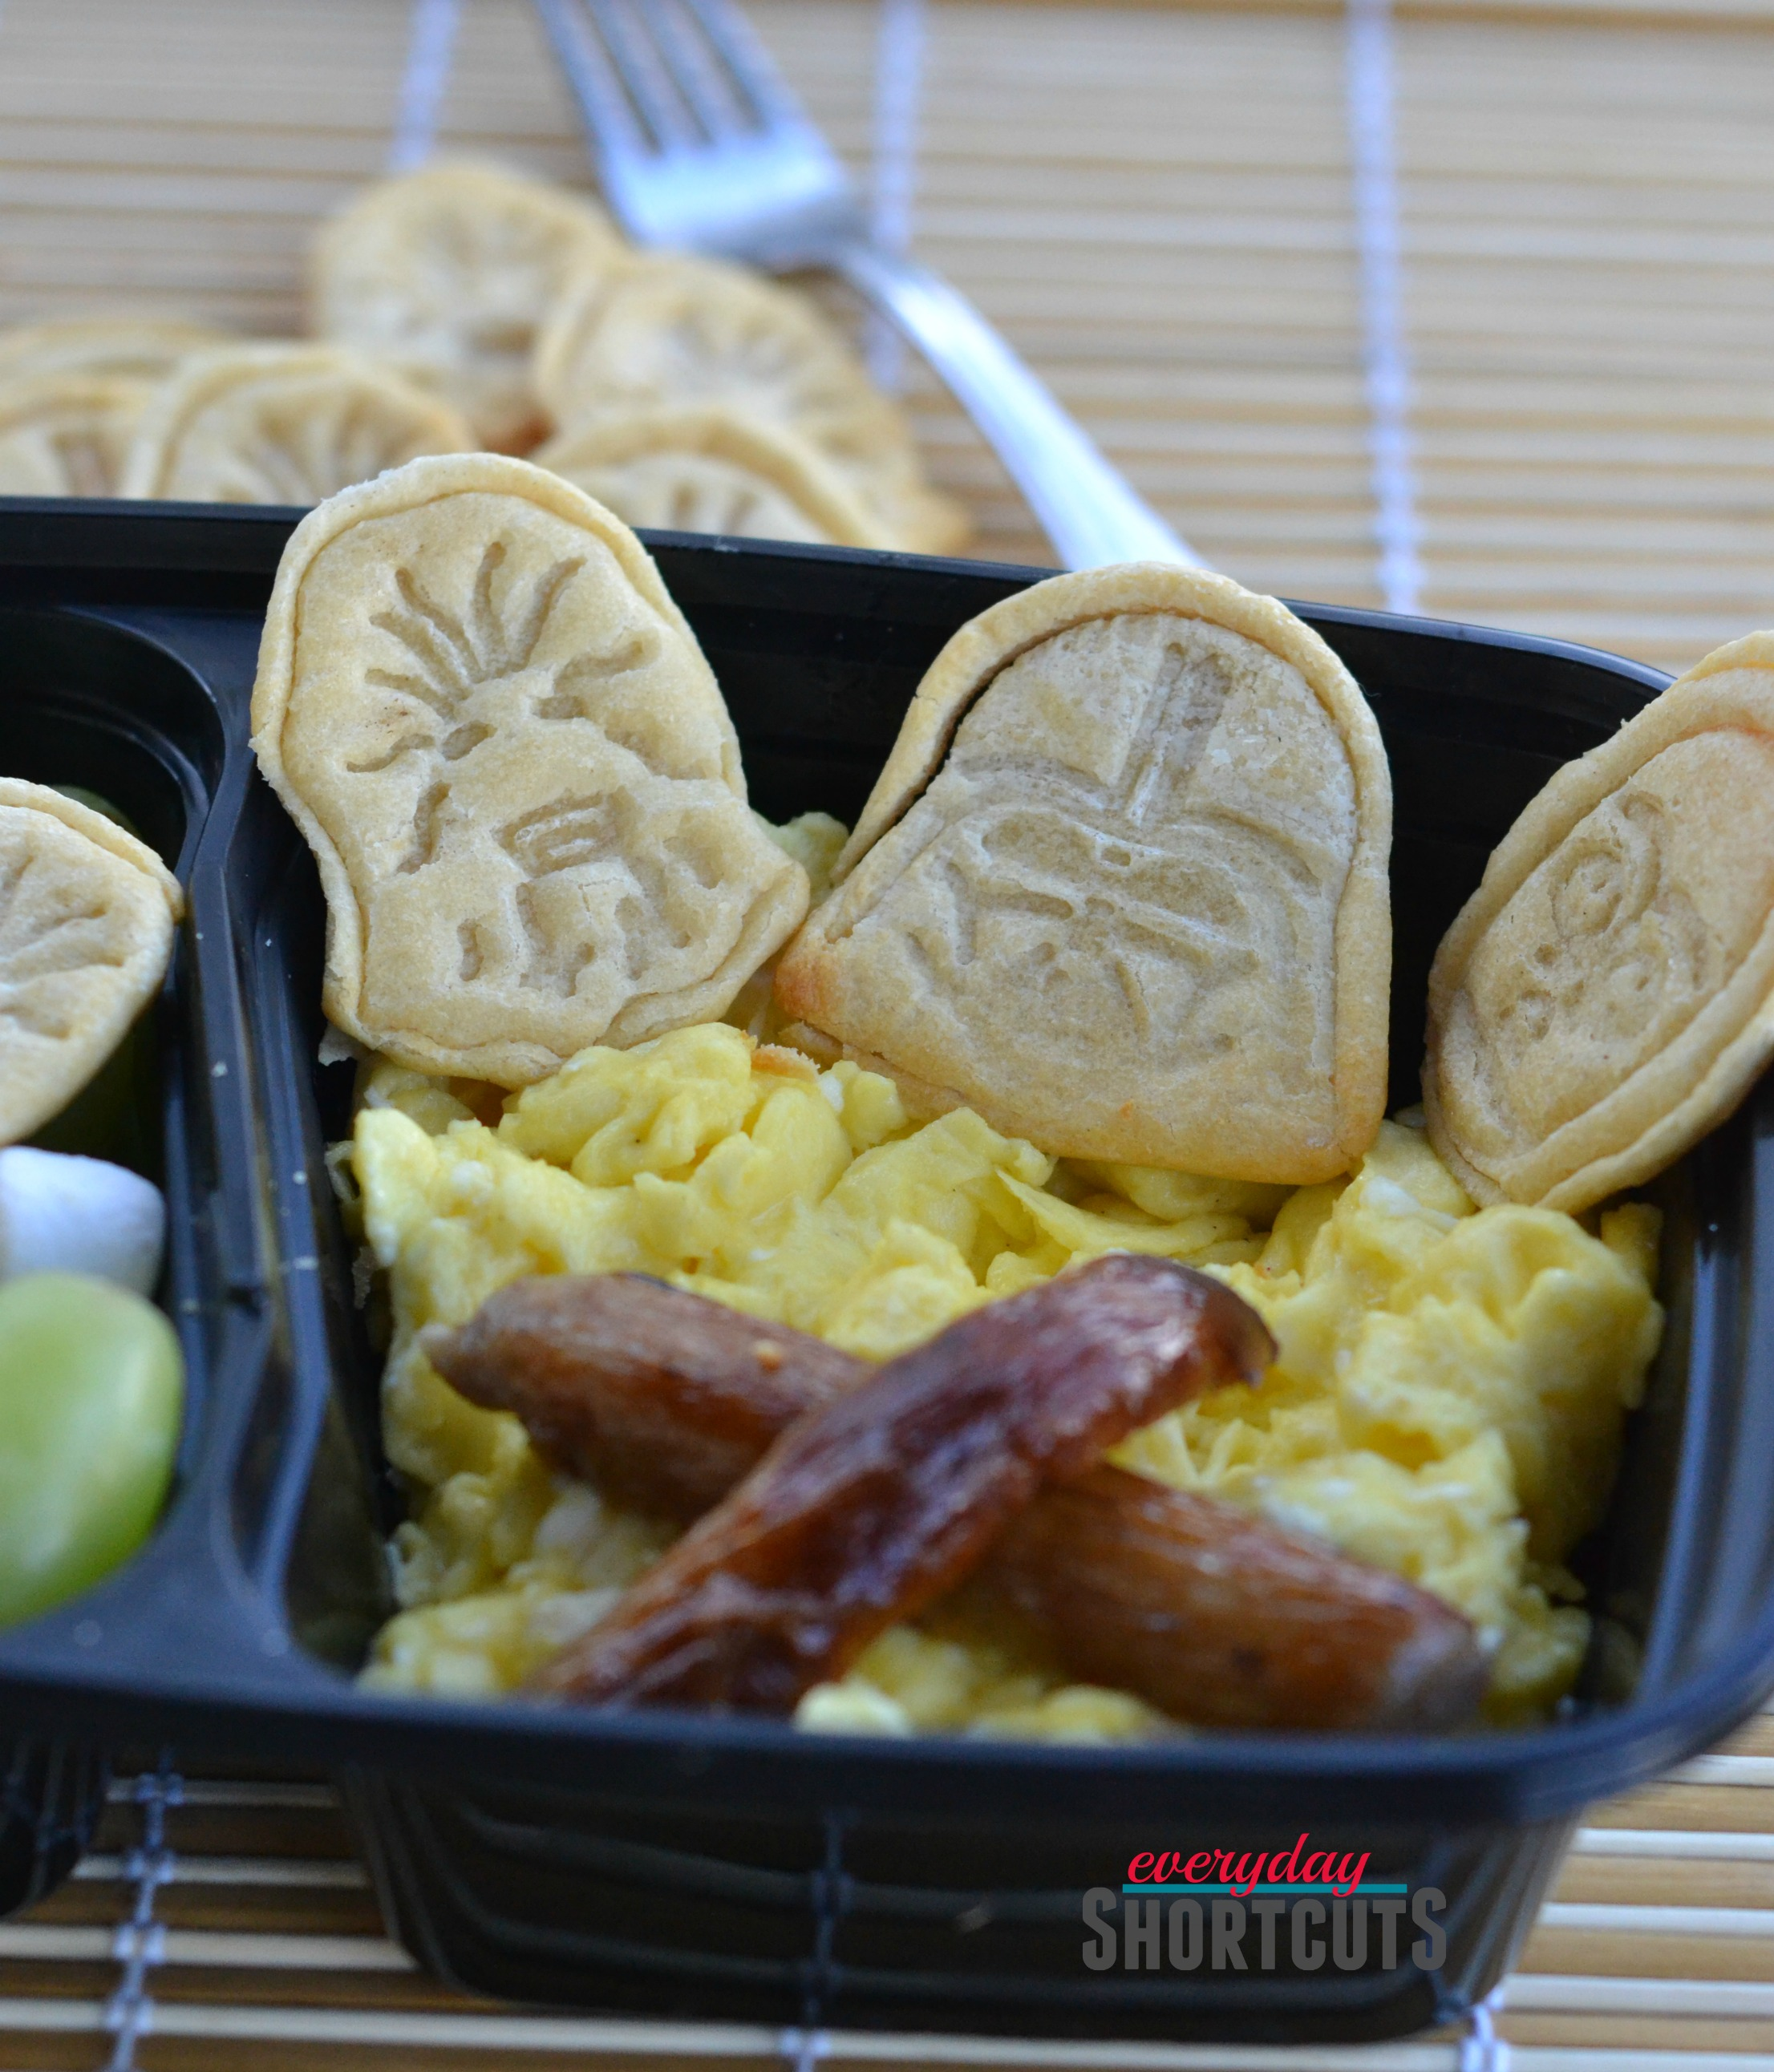 starwars breakfast